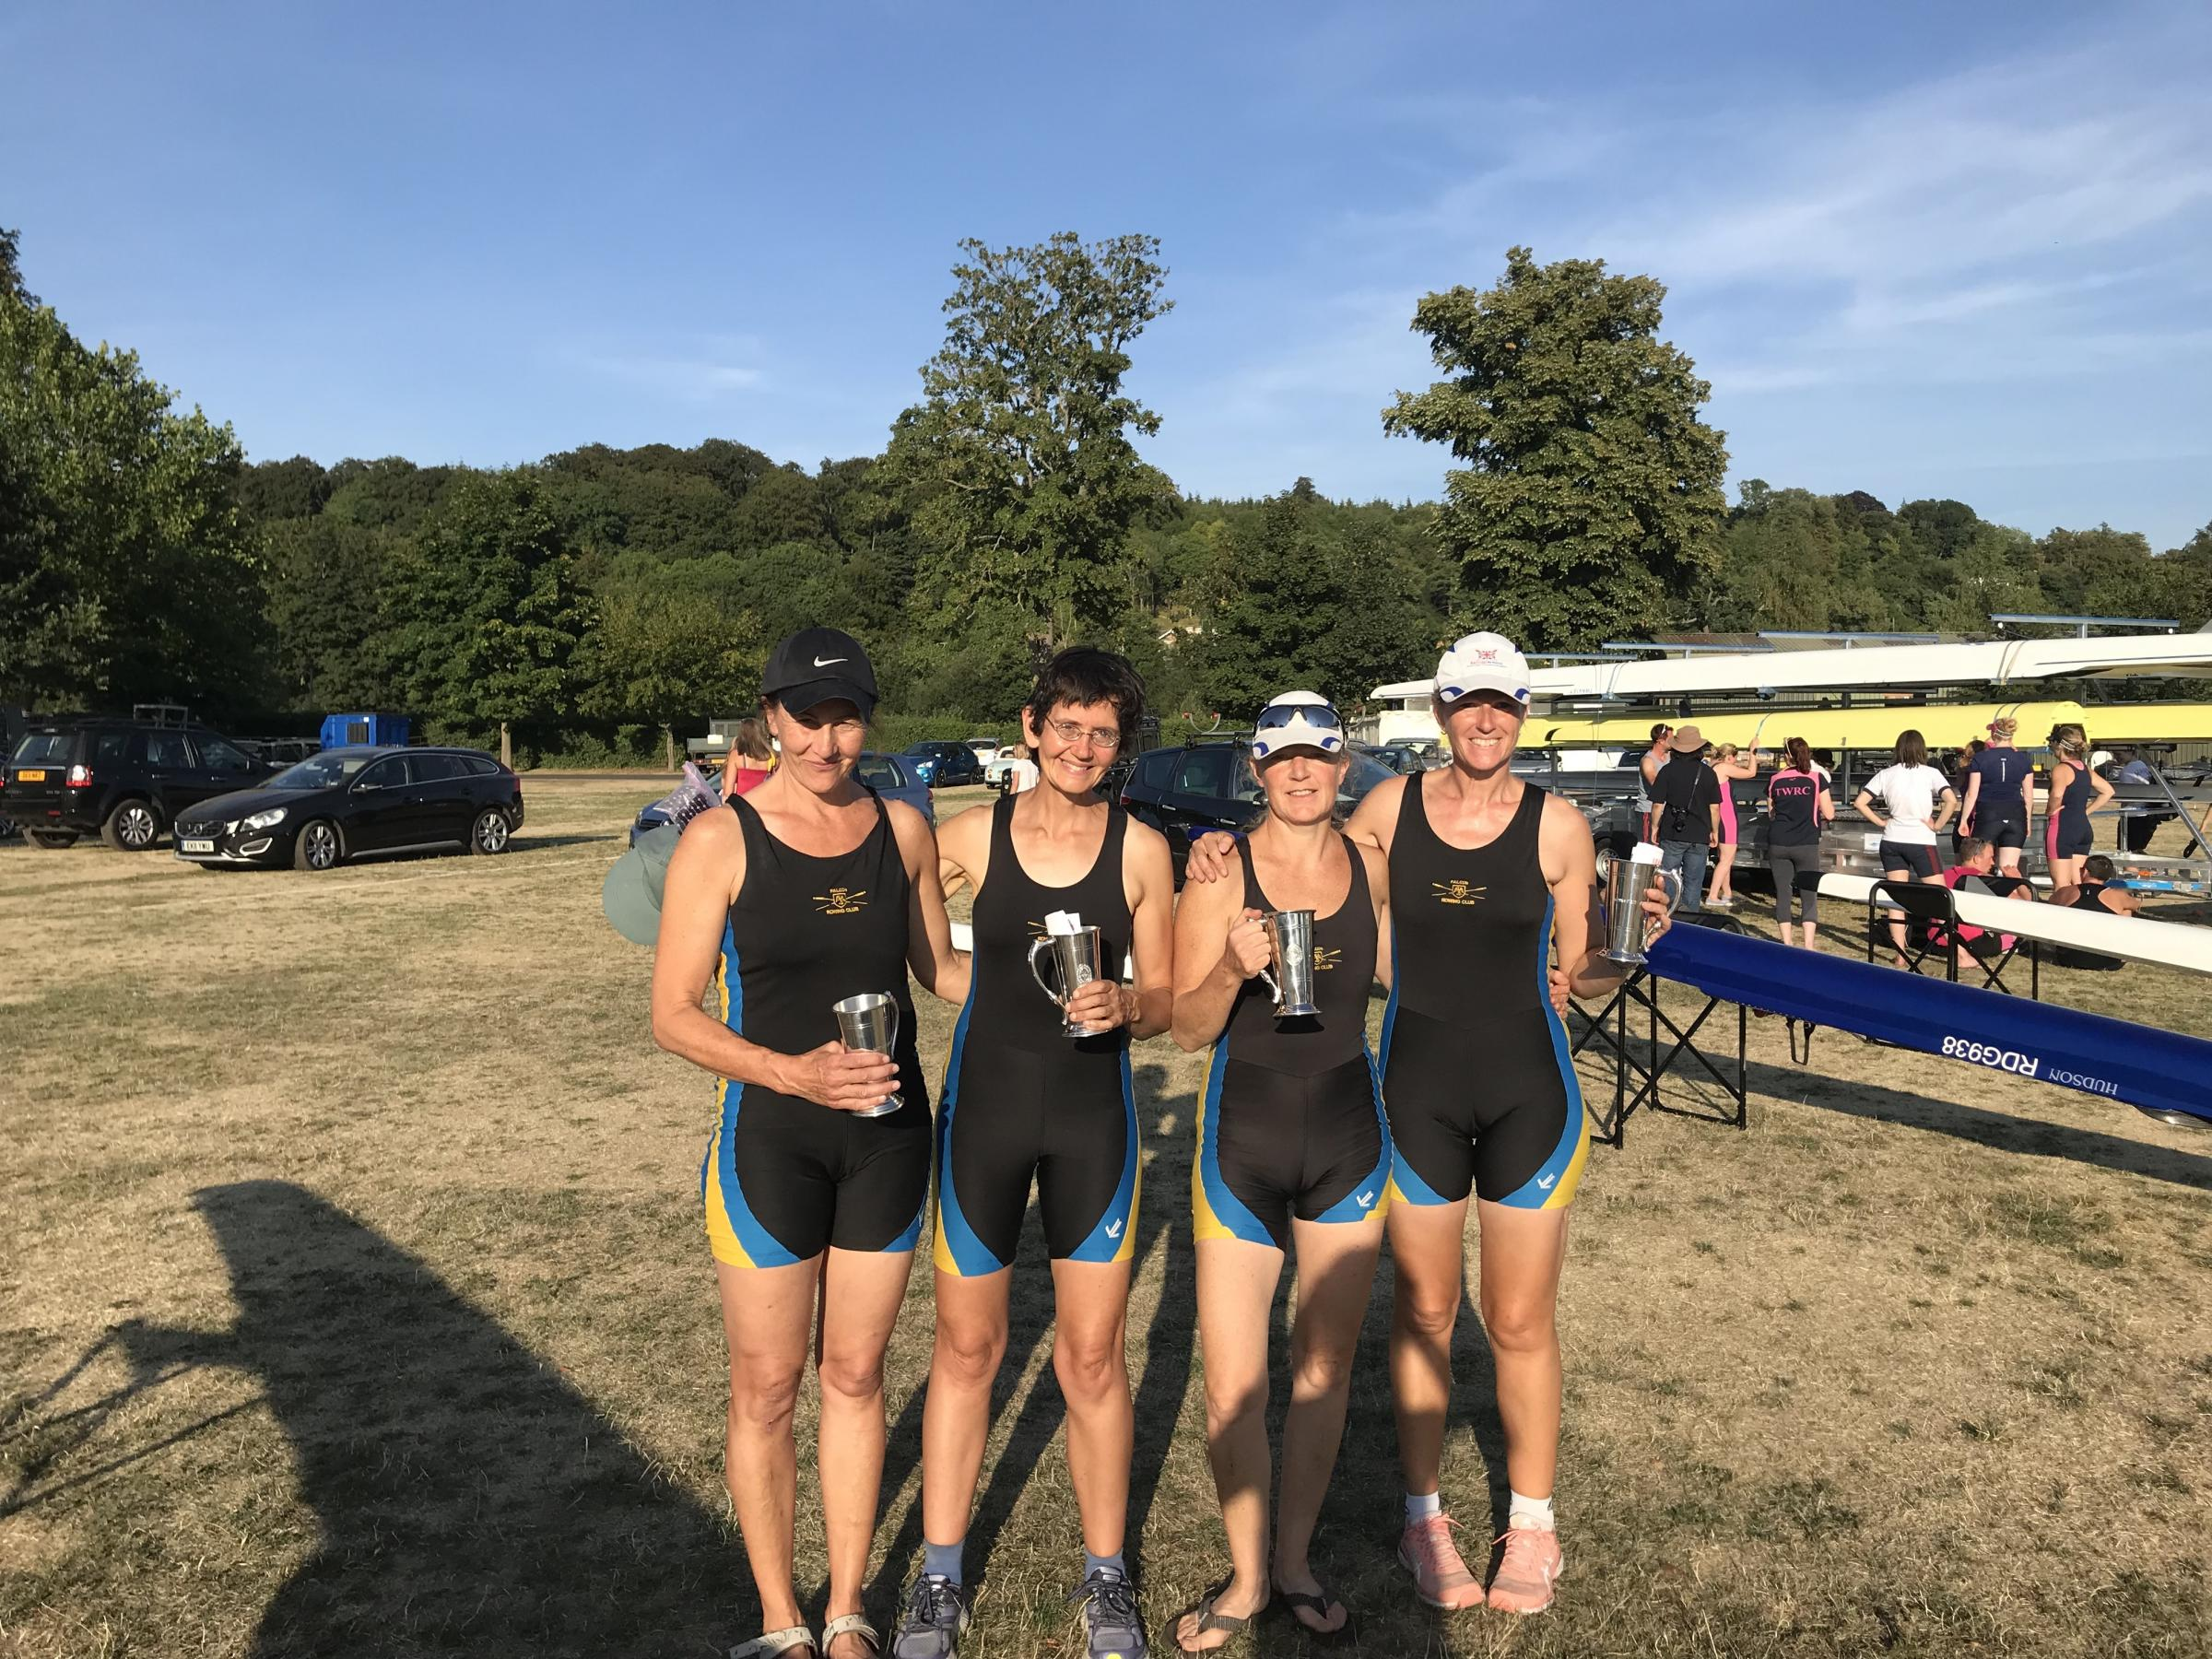 Falcon RC, winners of the Masters D quad at the Henley Town and Visitors Regatta (from left) Susie Smith, Naomi Sharma, Lil Cochrane and Camilla Scarf 		 Picture: Gemma Good